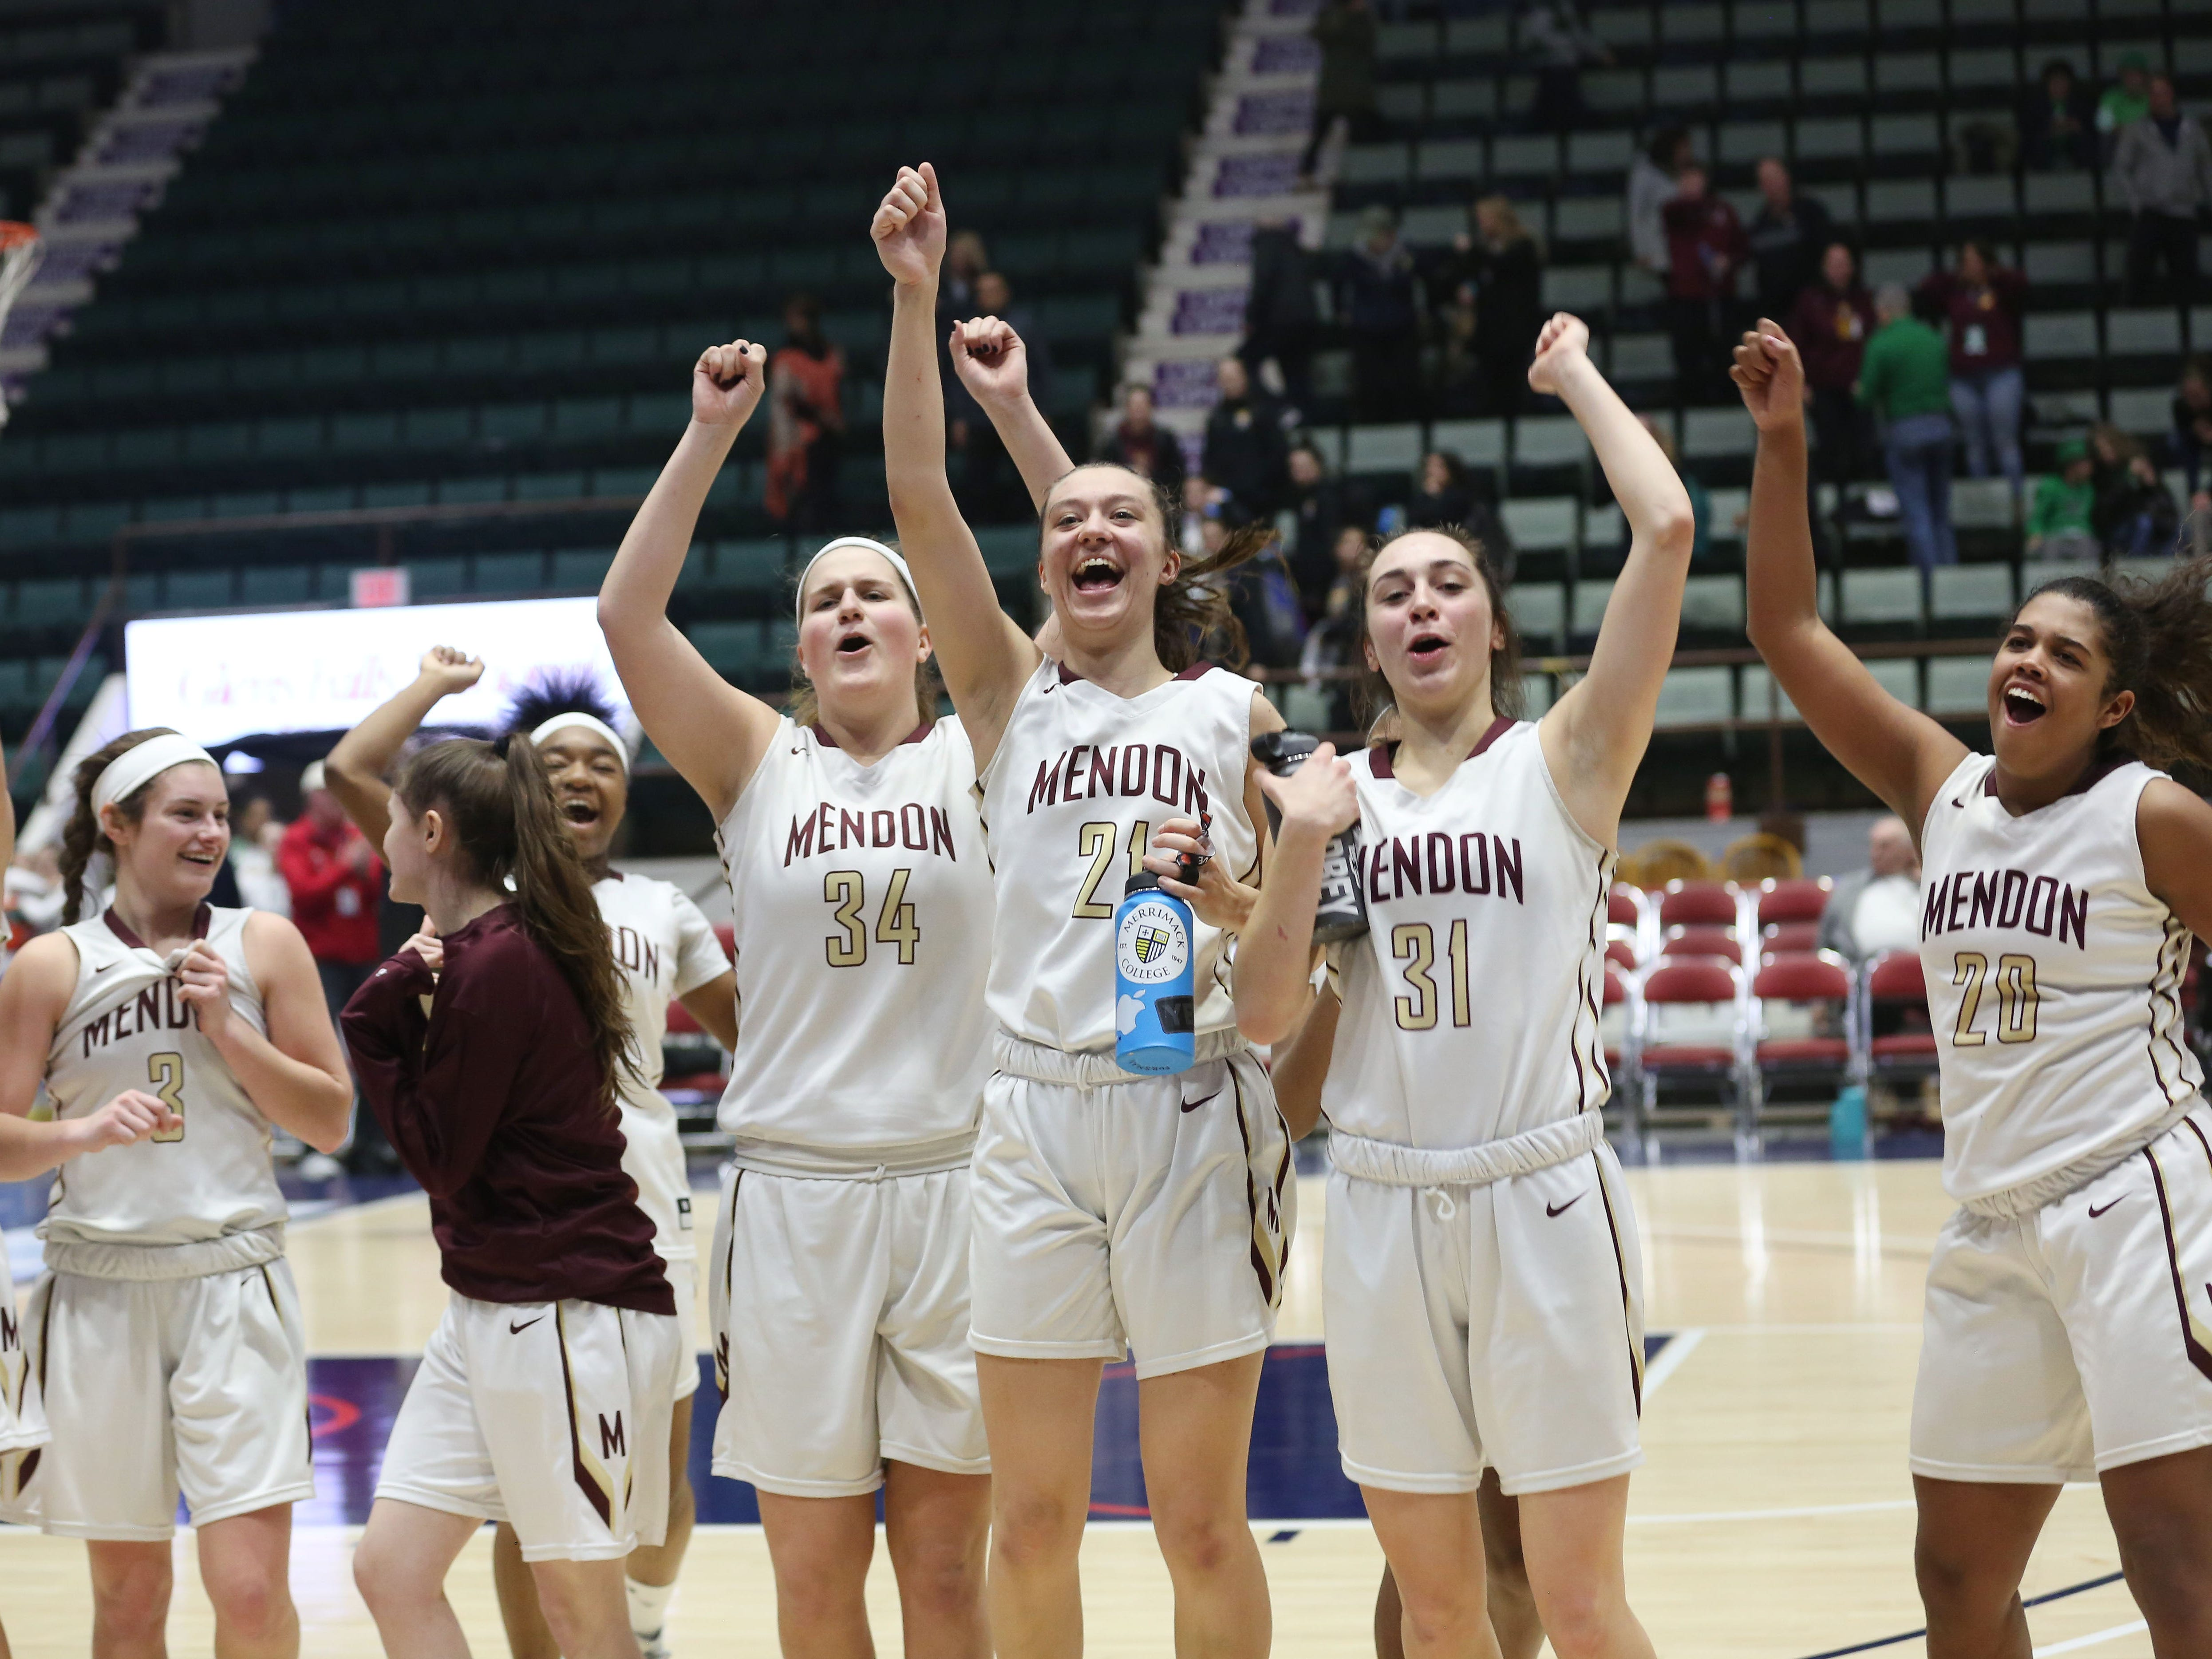 Pittsford Mendon players celebrate their 49-43  victory over James Madison in the girls Class A semifinal in the Federation Tournament of Champions at the Cool Insuring Arena in Glens Falls March 22, 2019. Mendon won the game.